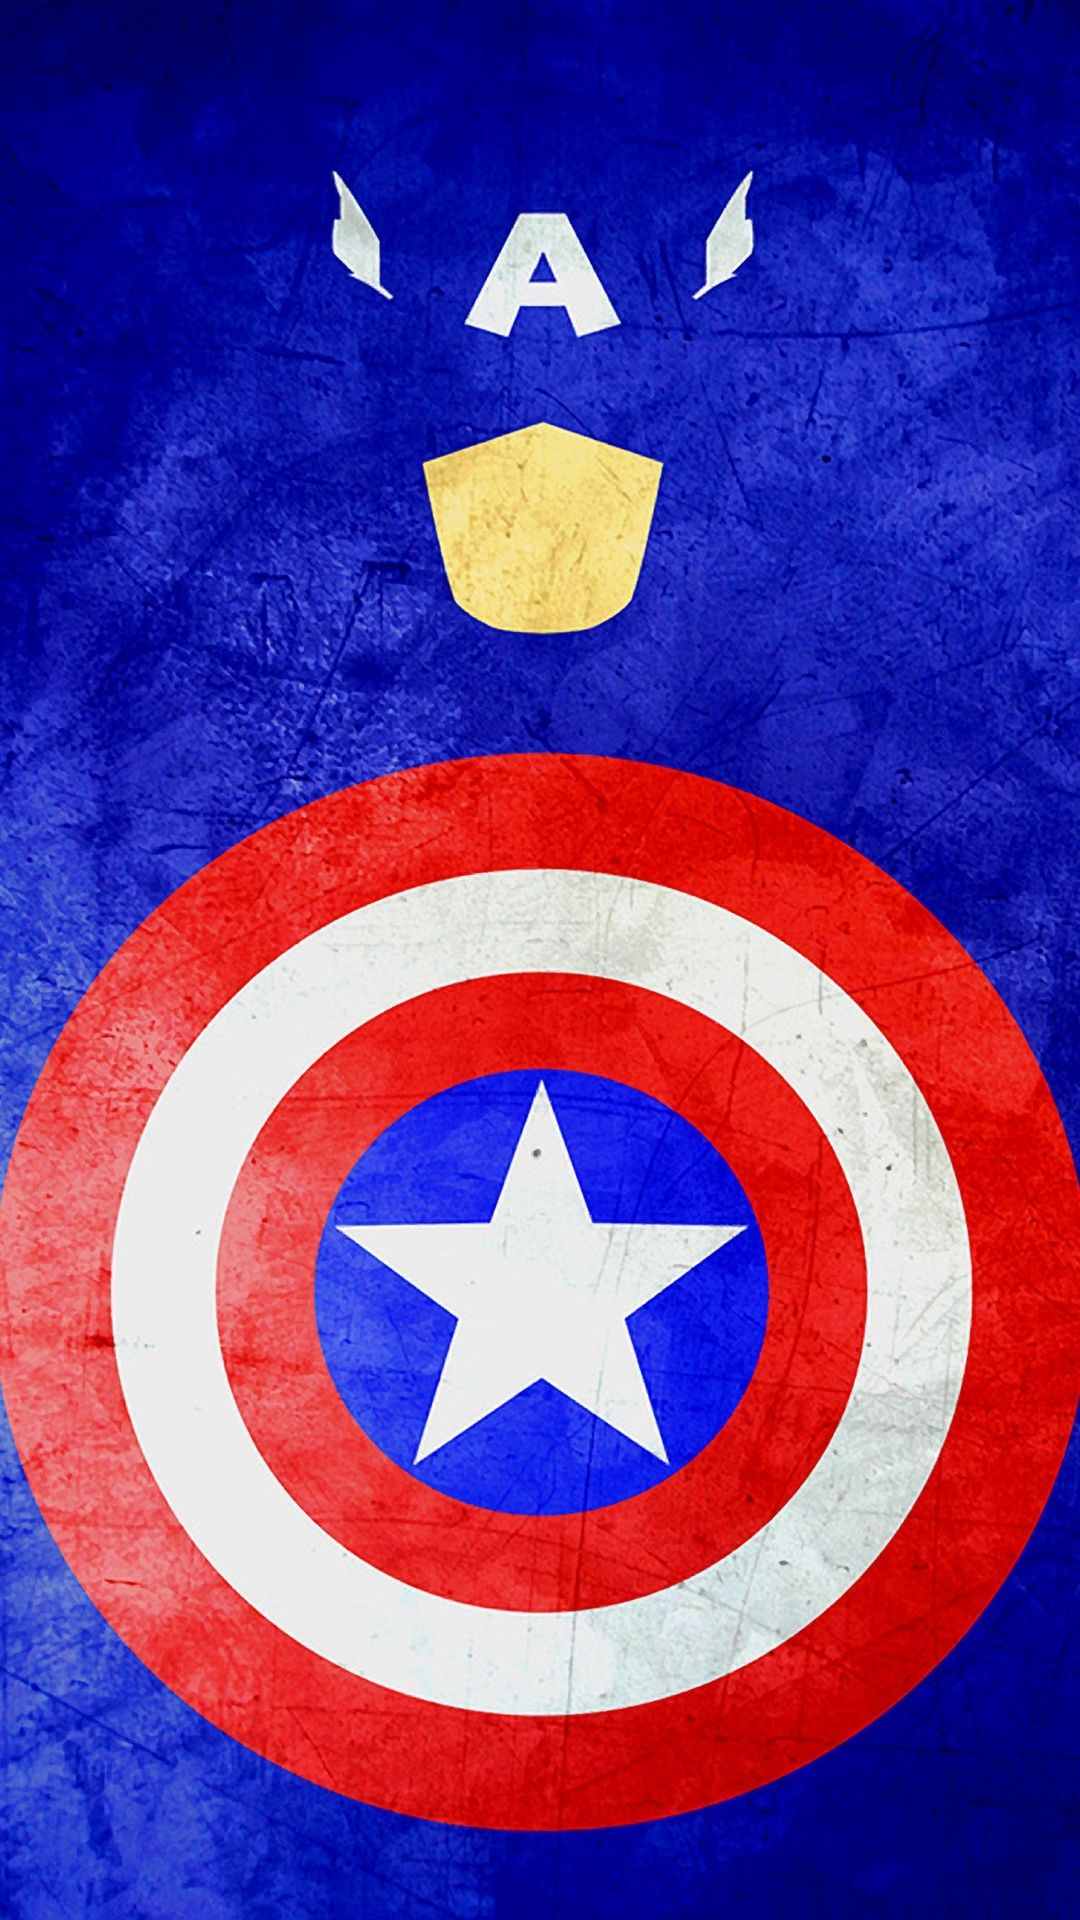 Free download Galaxy S4 wallpapers Wallpapers Captain America